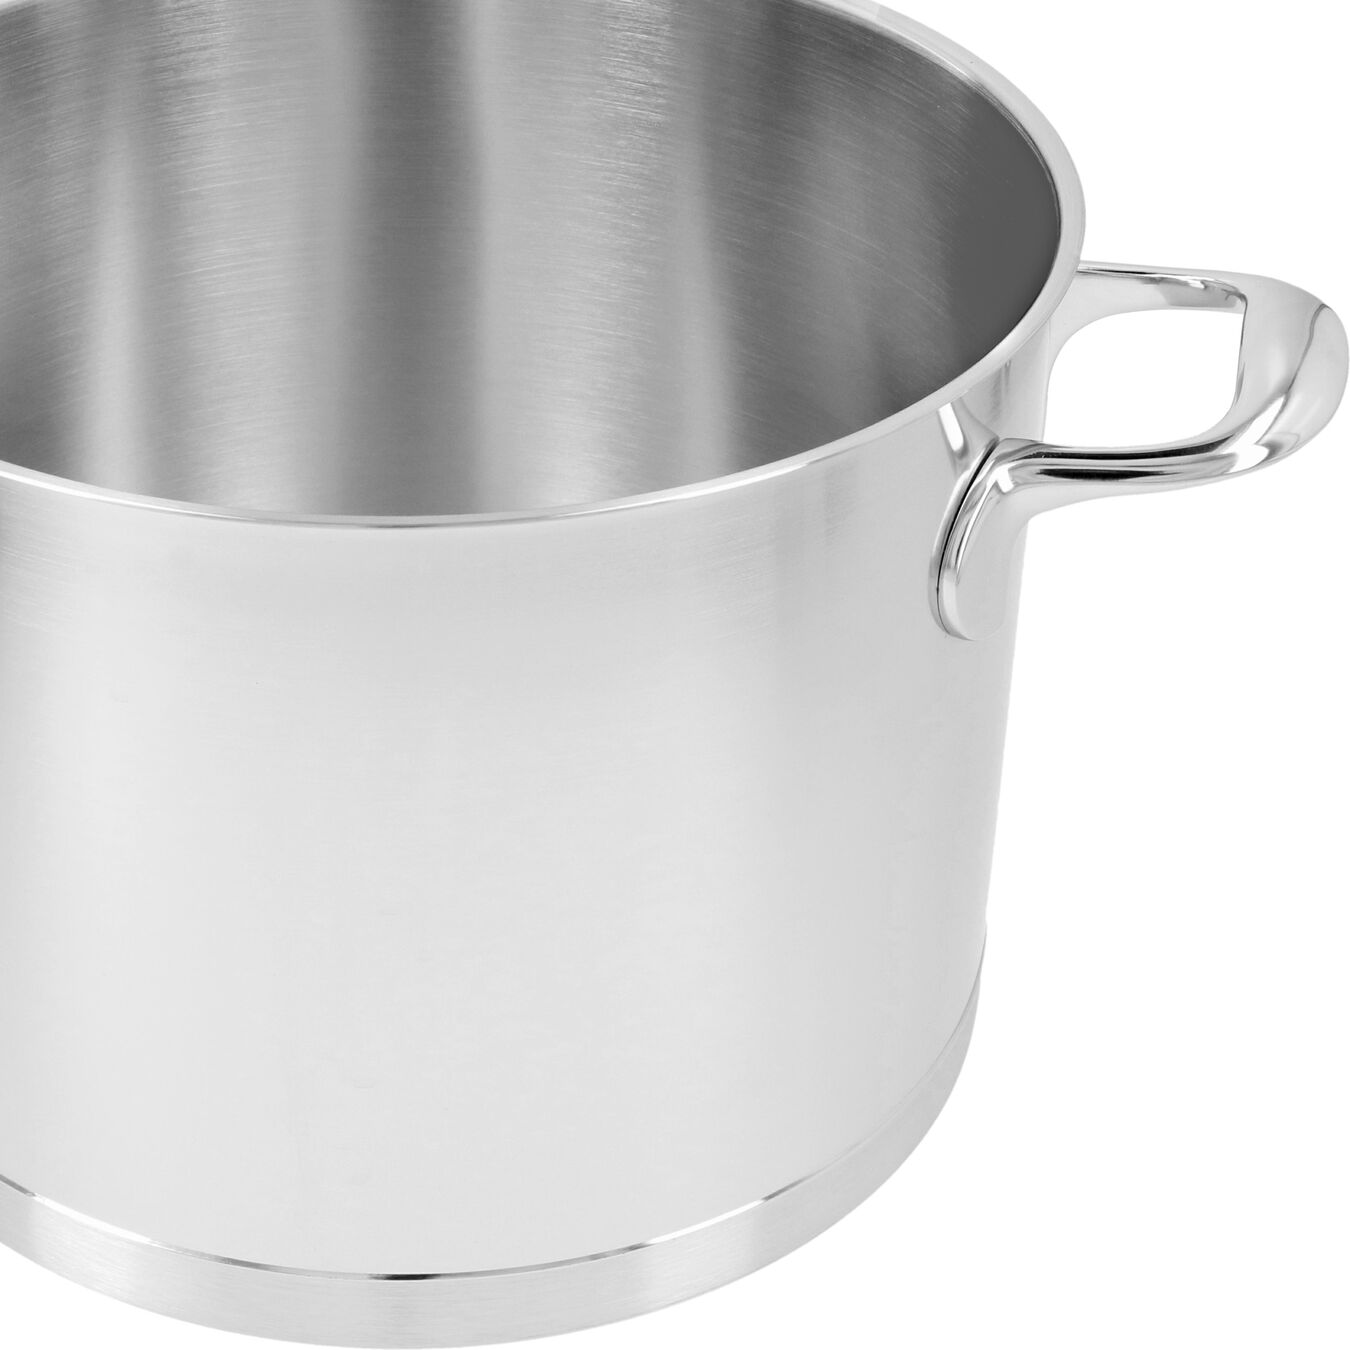 8 l 18/10 Stainless Steel Stock pot with lid,,large 4